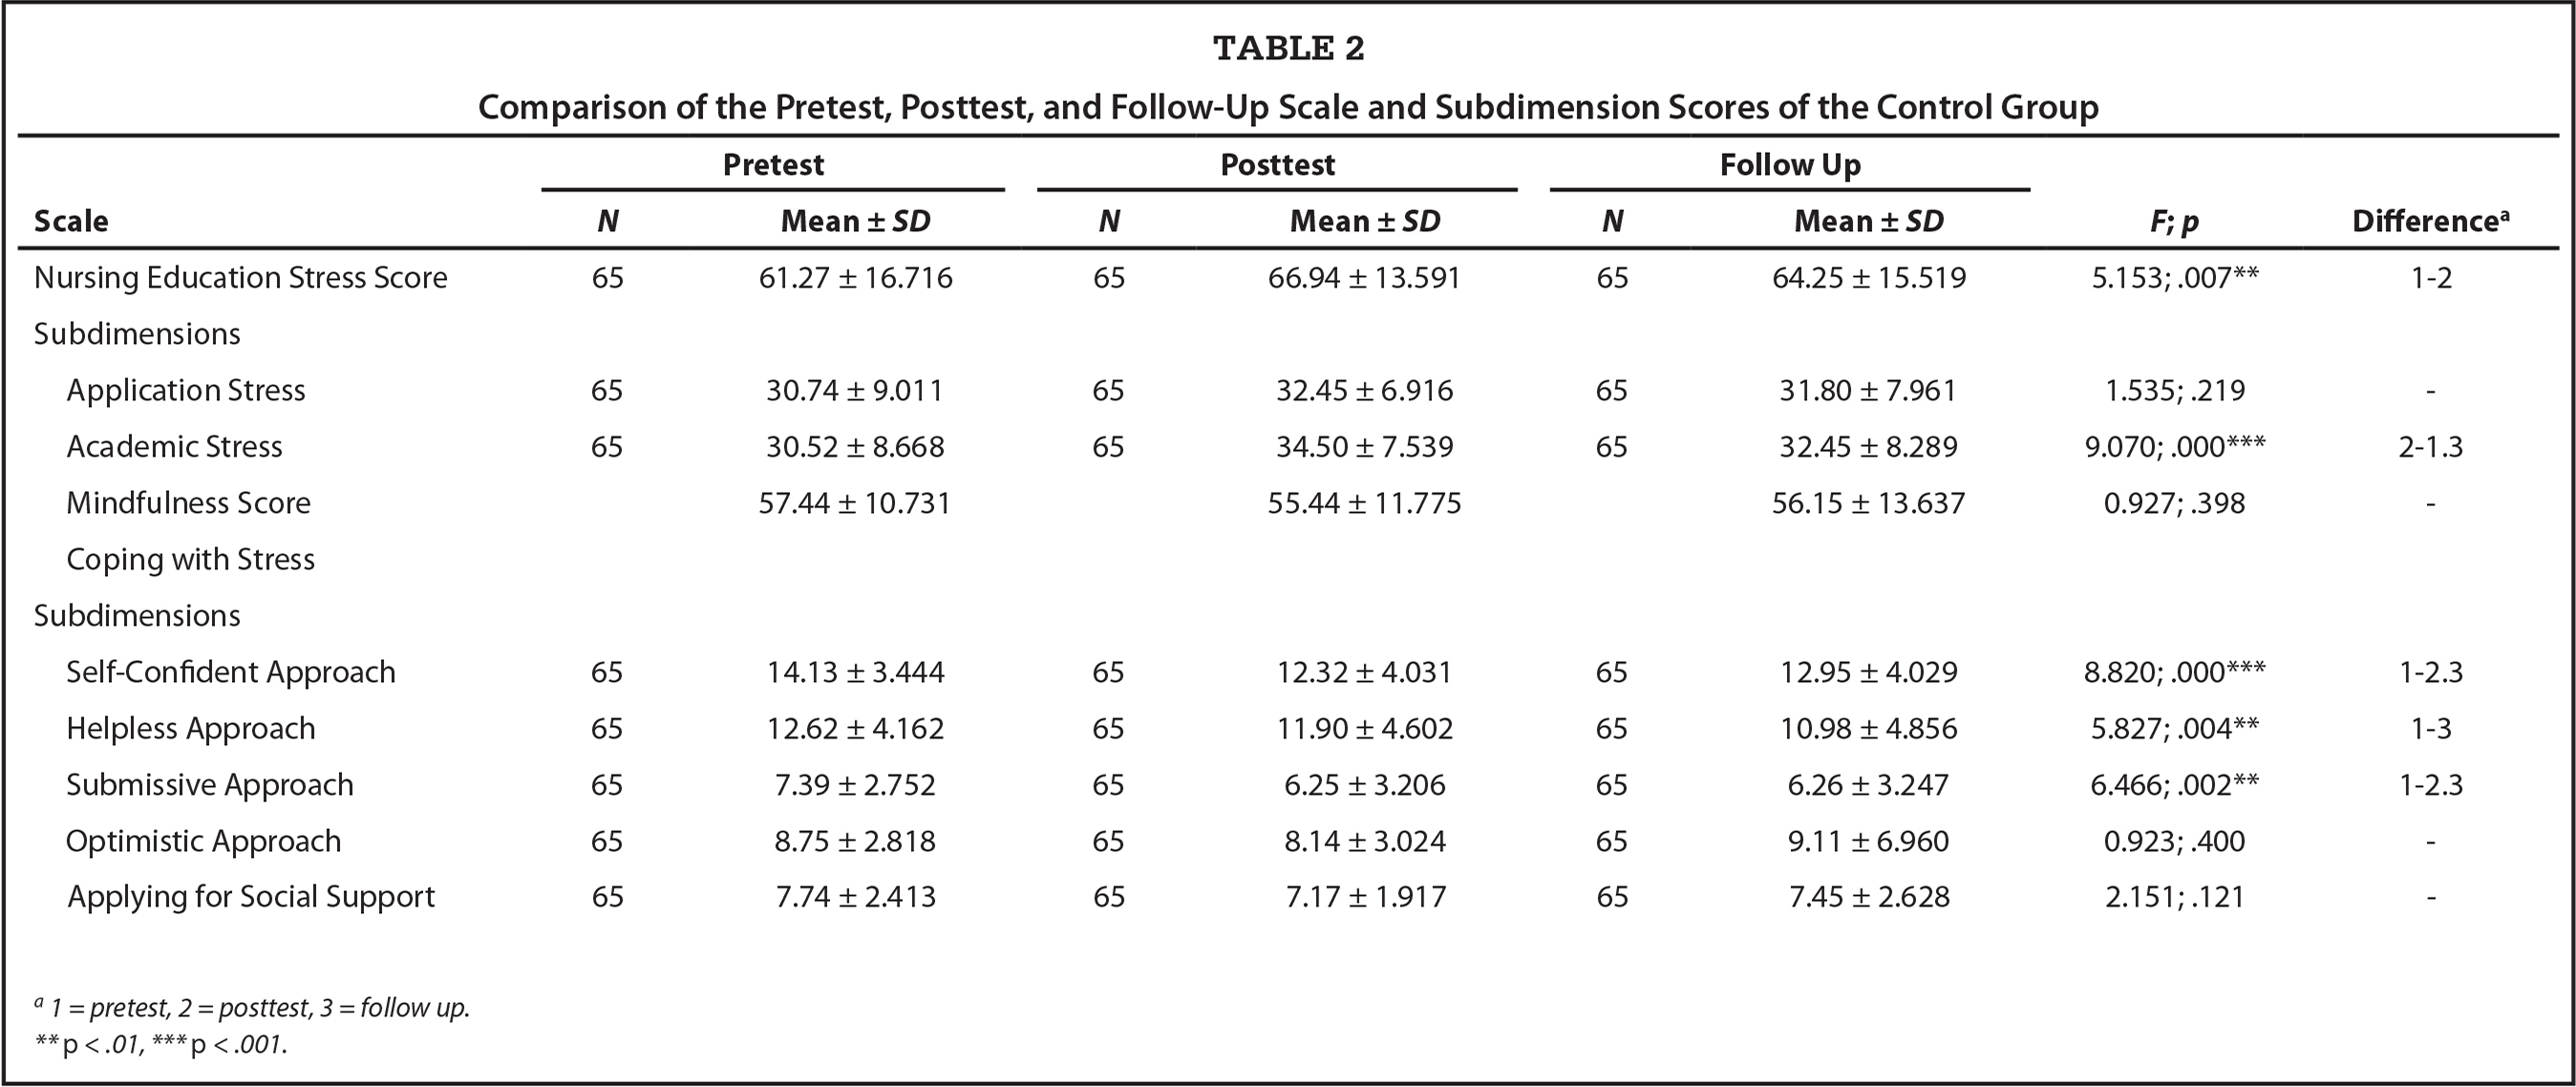 Comparison of the Pretest, Posttest, and Follow-Up Scale and Subdimension Scores of the Control Group